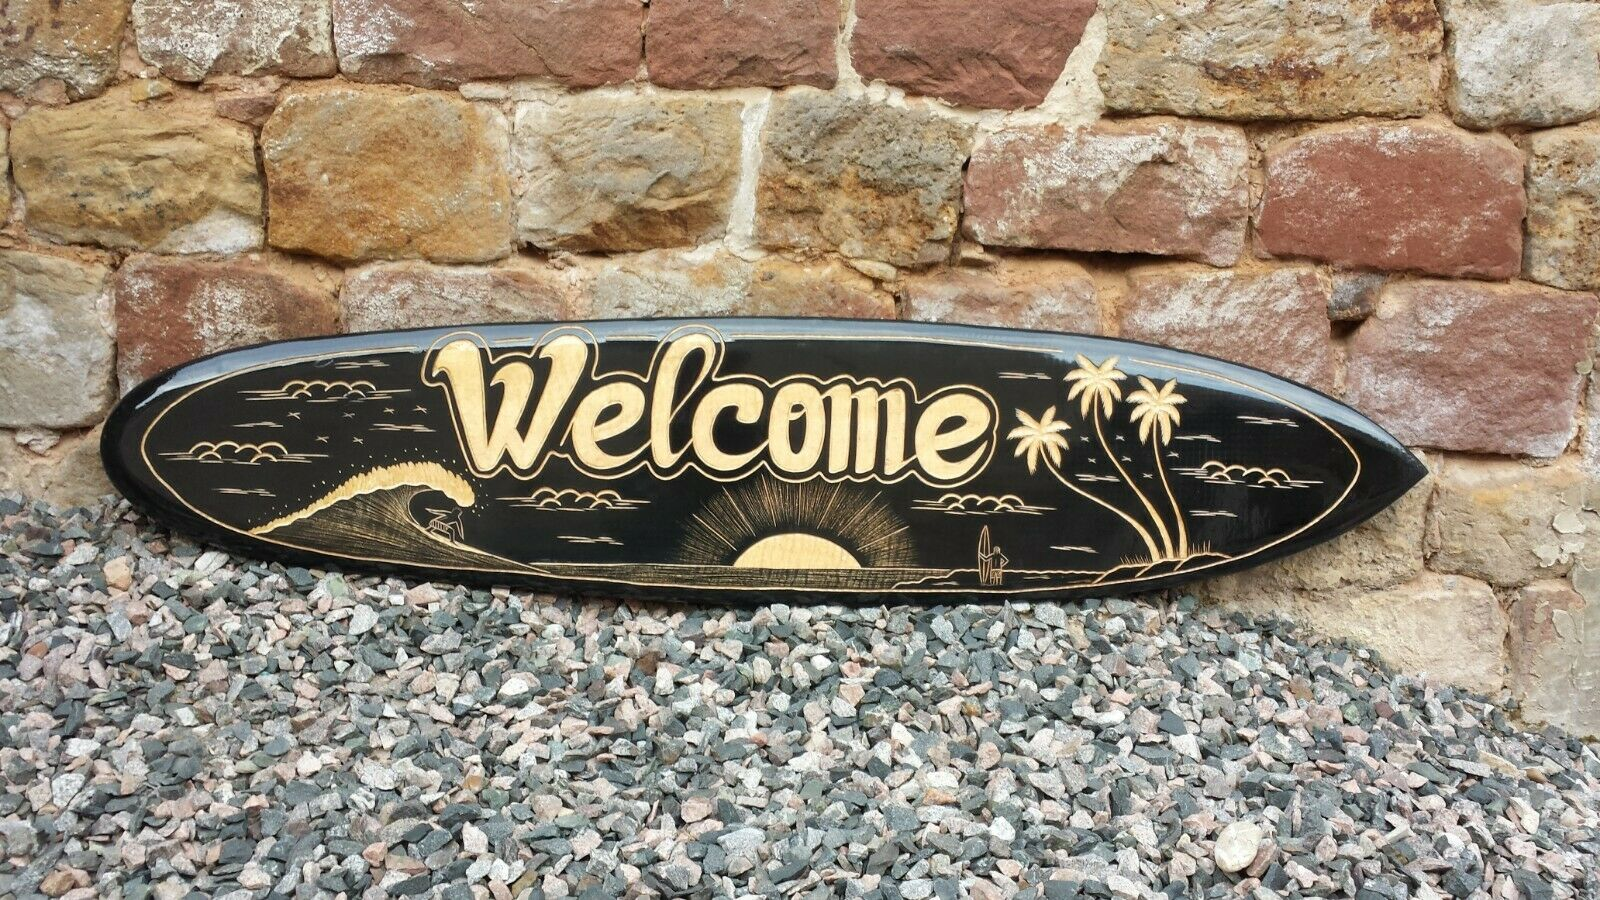 NEW SOLID WOOD MODEL DECORATIVE 100cm HAND CARVED WELCOME SURFBOARD   su100CWE2